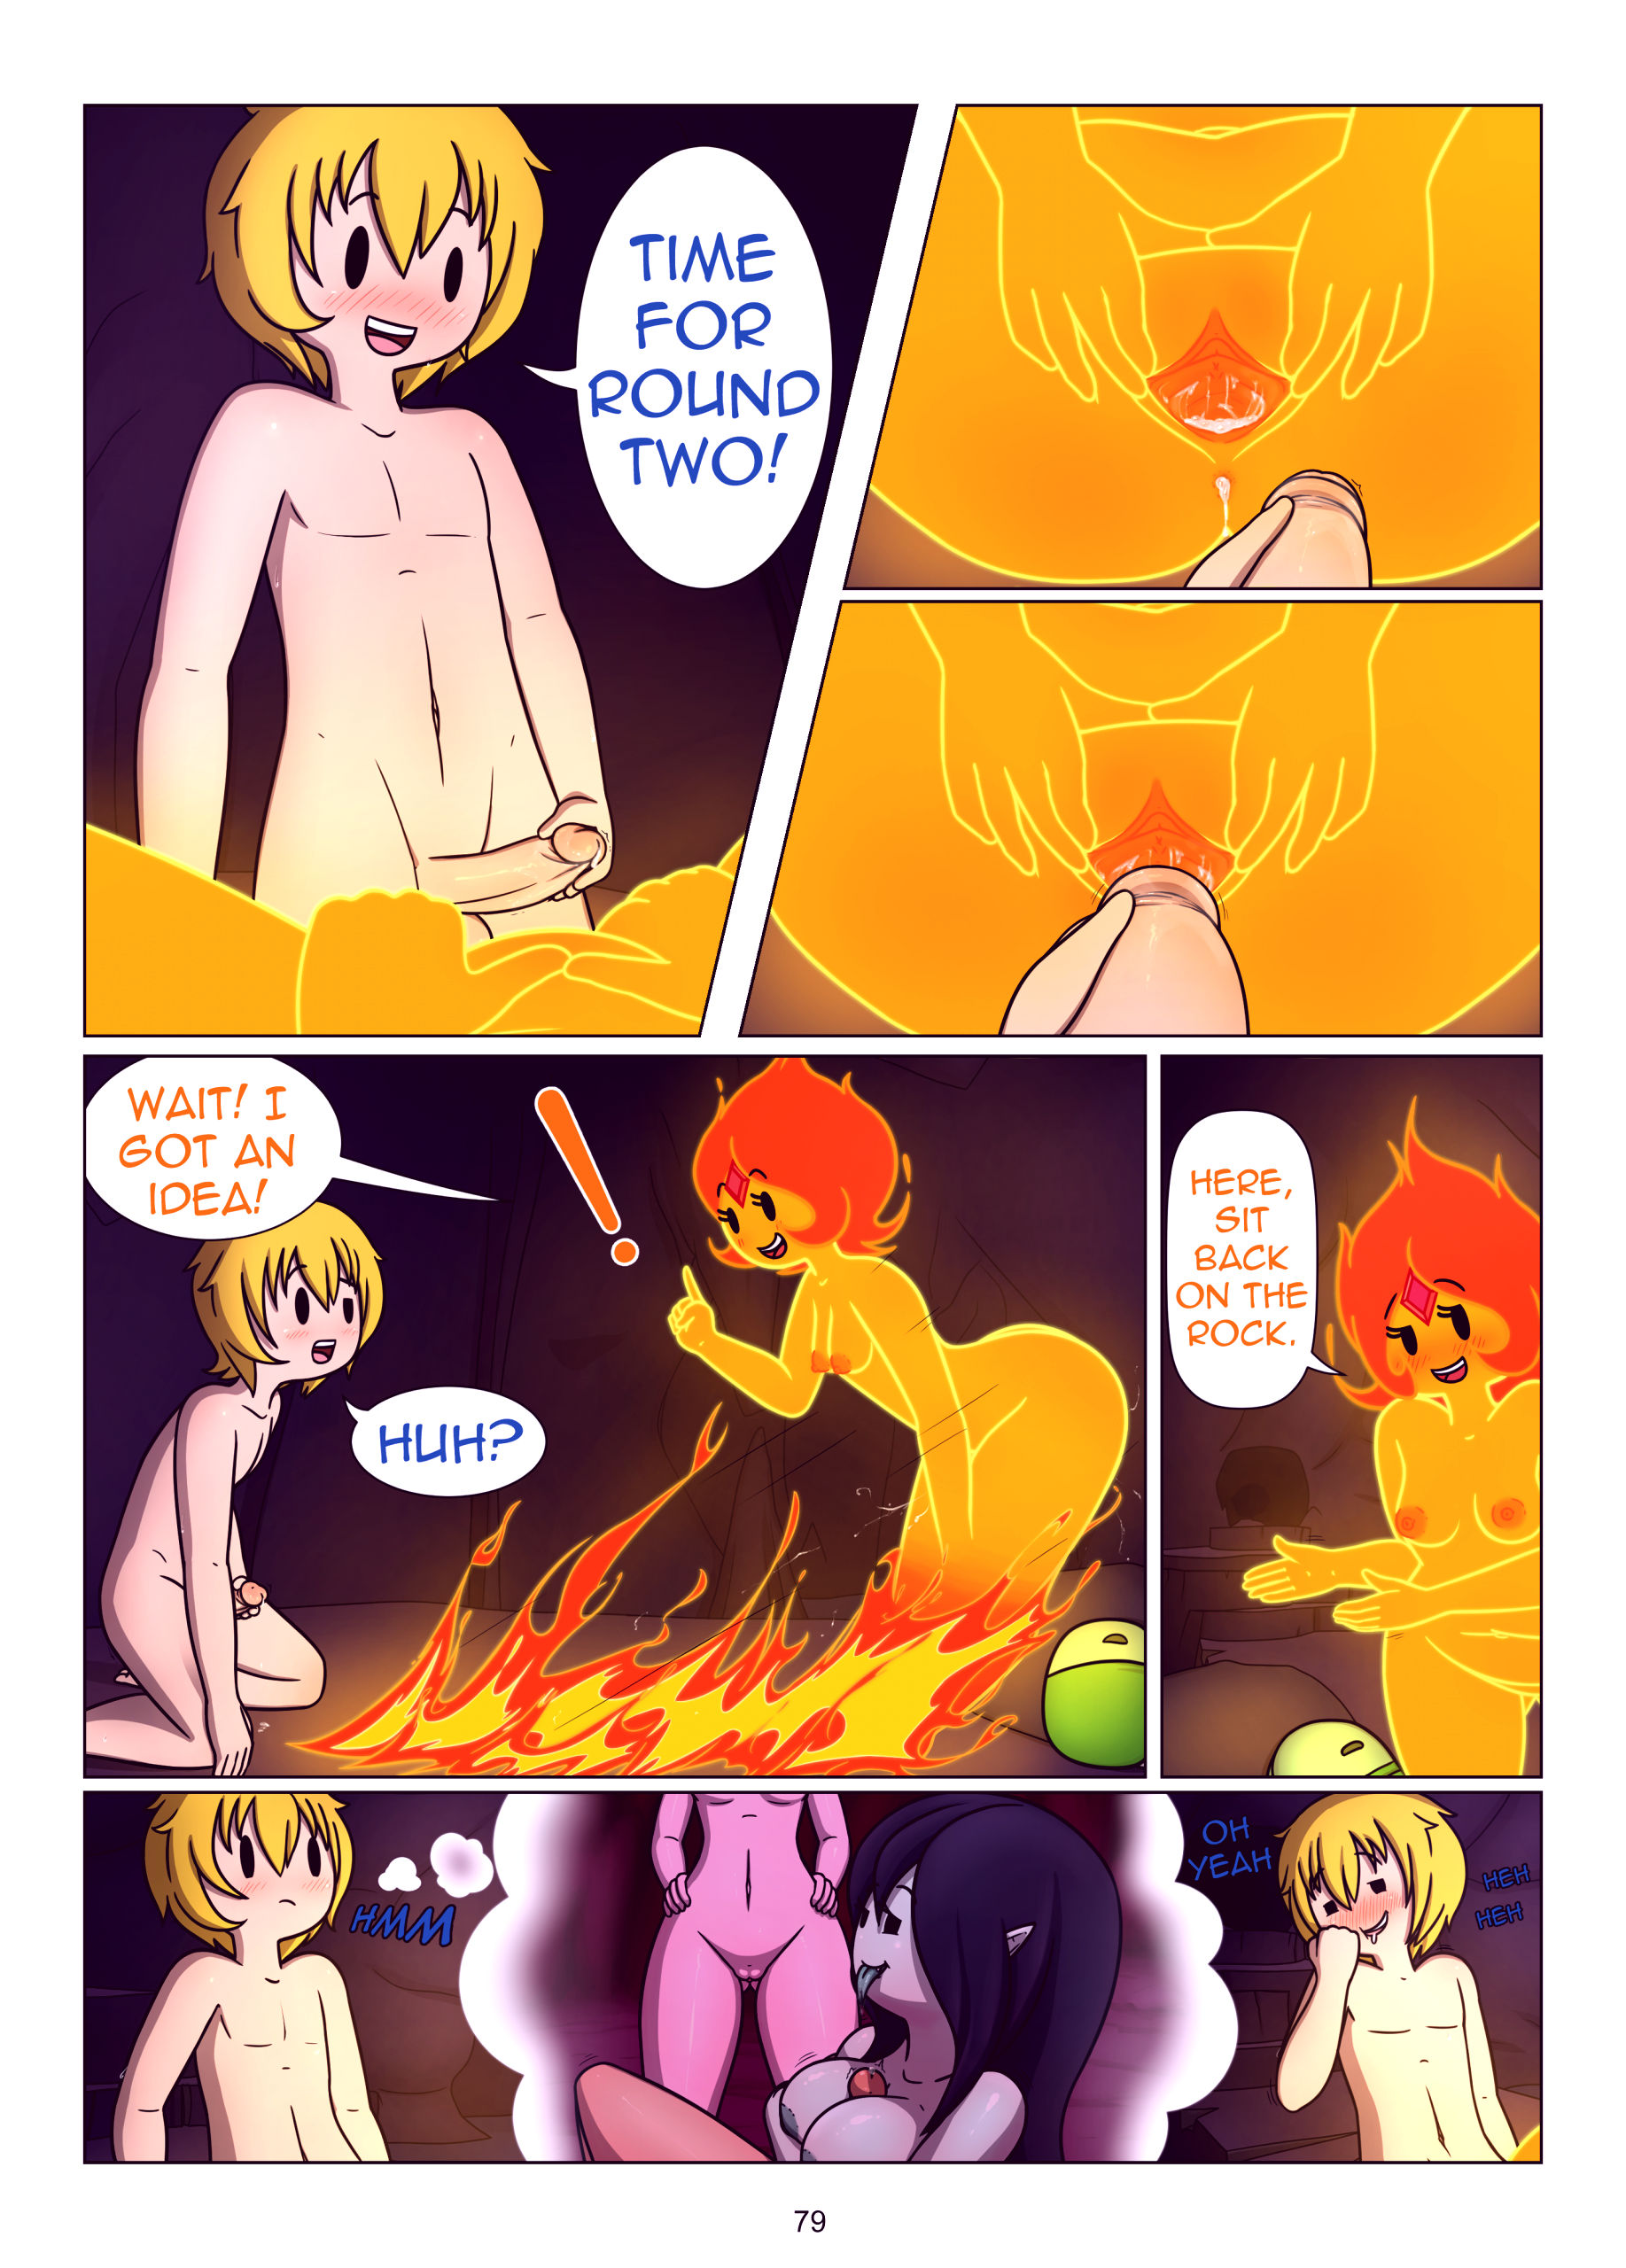 Misadventure time the collection porn comic picture 80